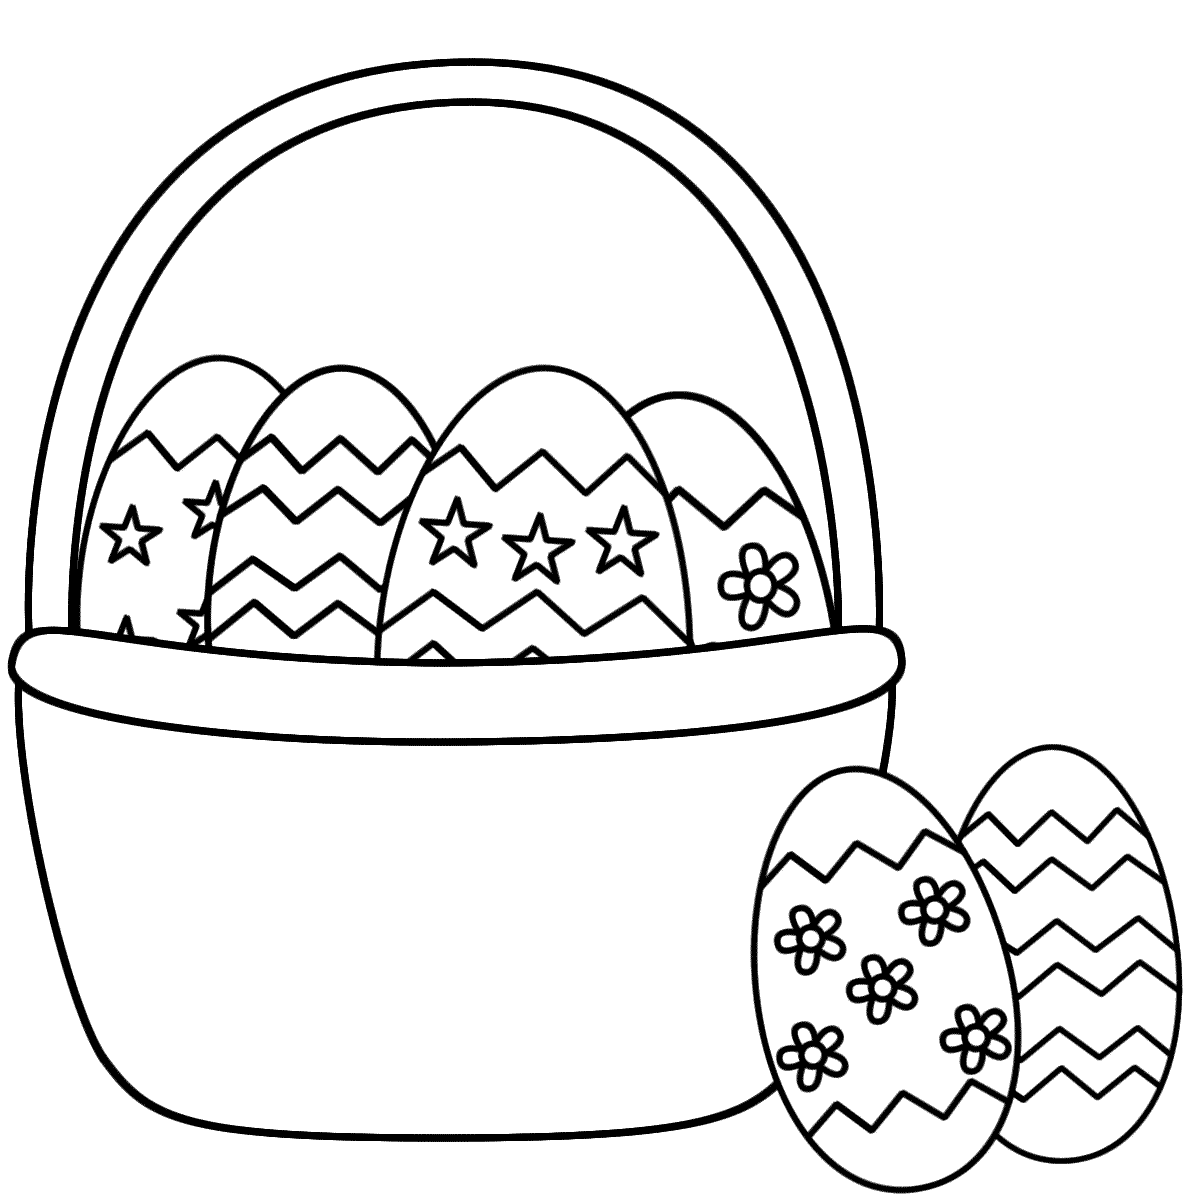 Easter Egg Basket Colouring Pages